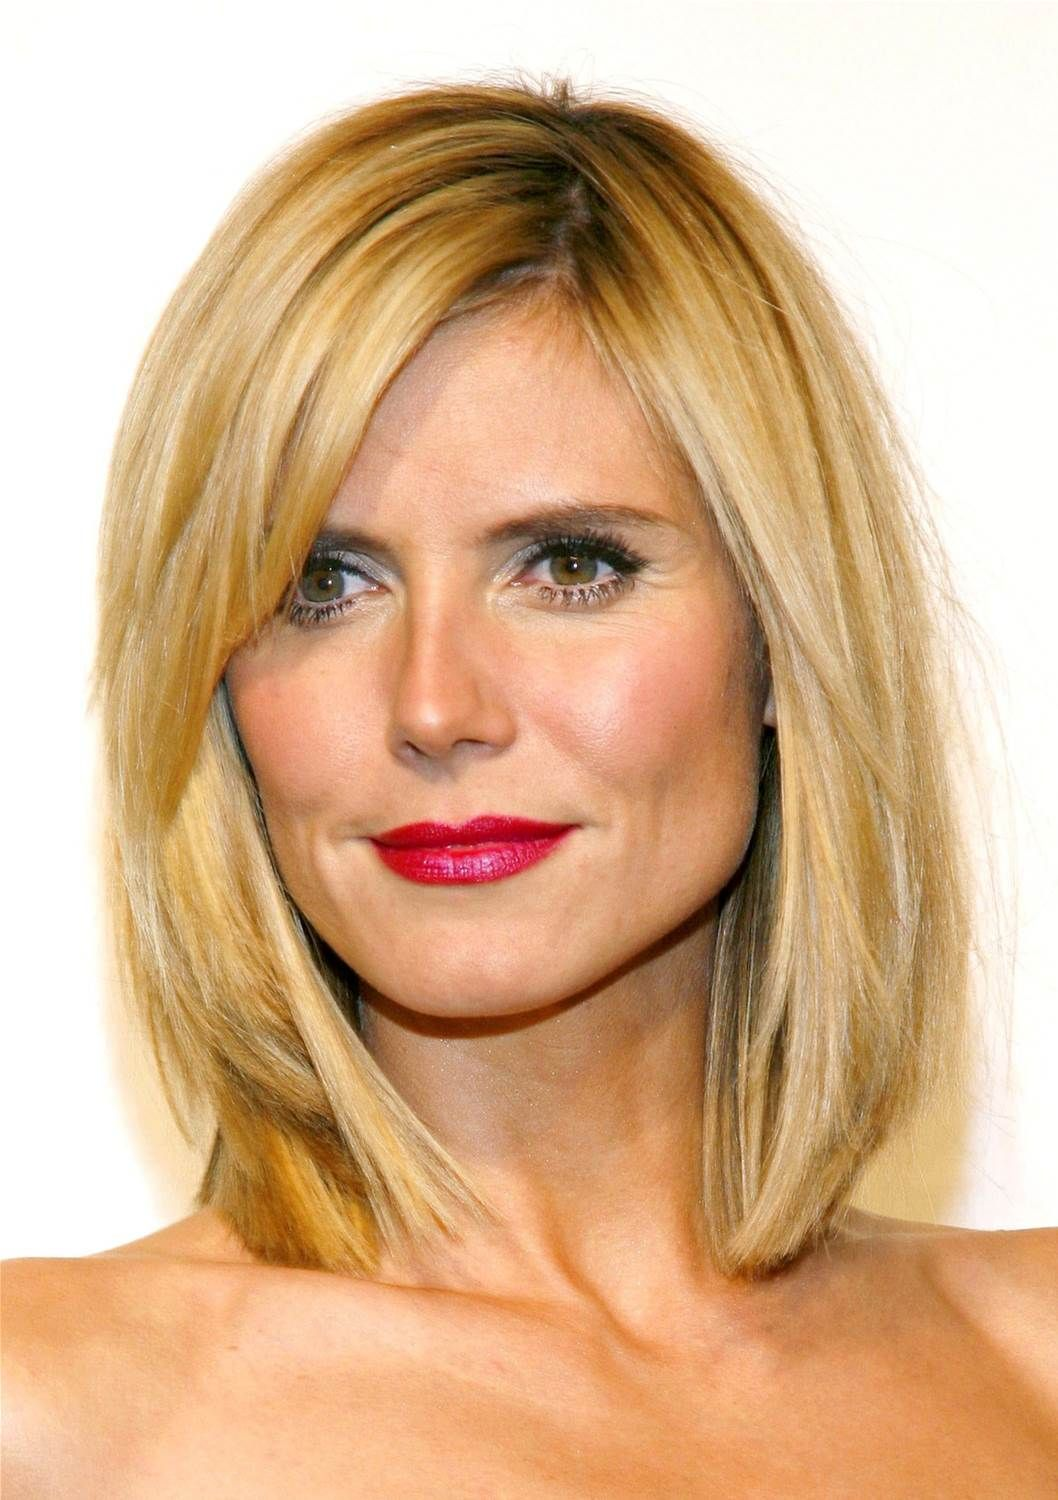 Image result for medium hair styles for women over square face